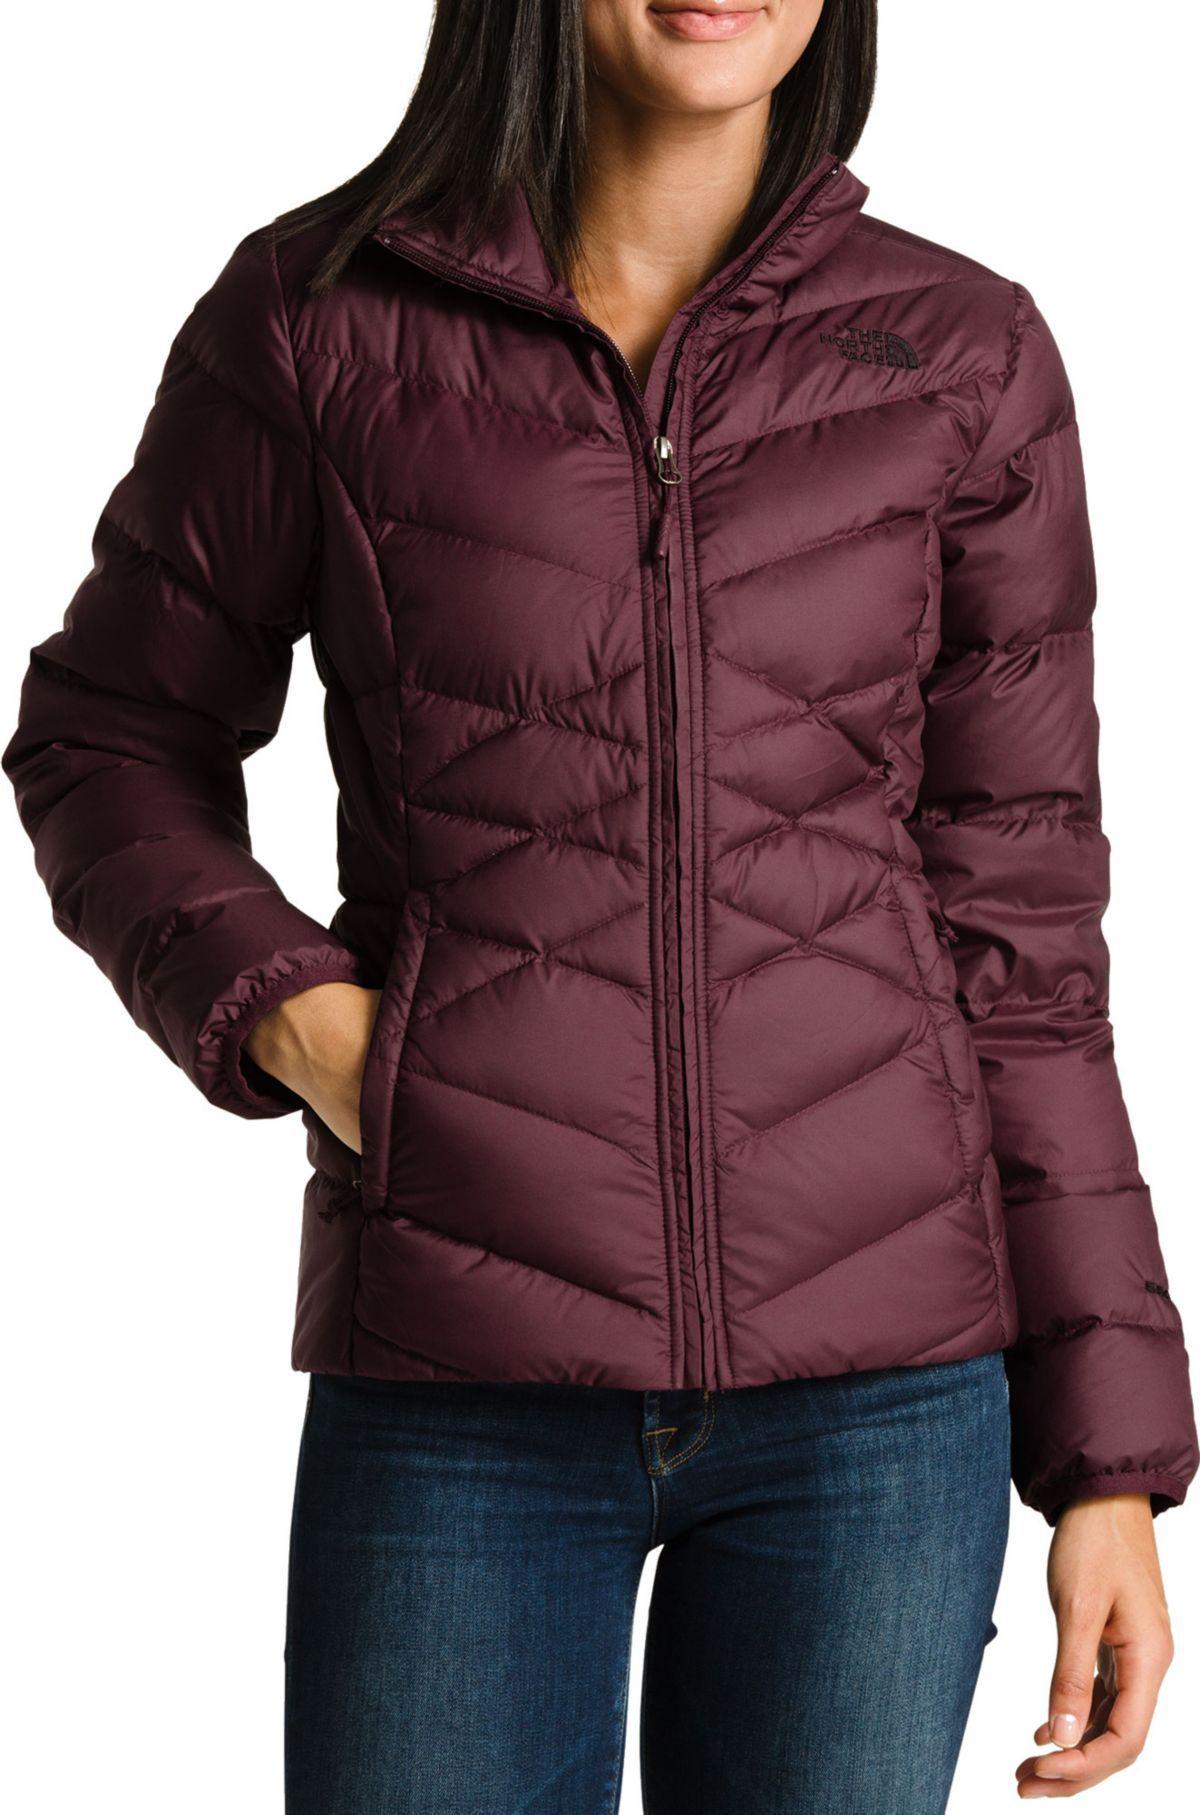 e4371ab6f The North Face Women's Alpz Down Jacket | DICK'S Sporting Goods ...